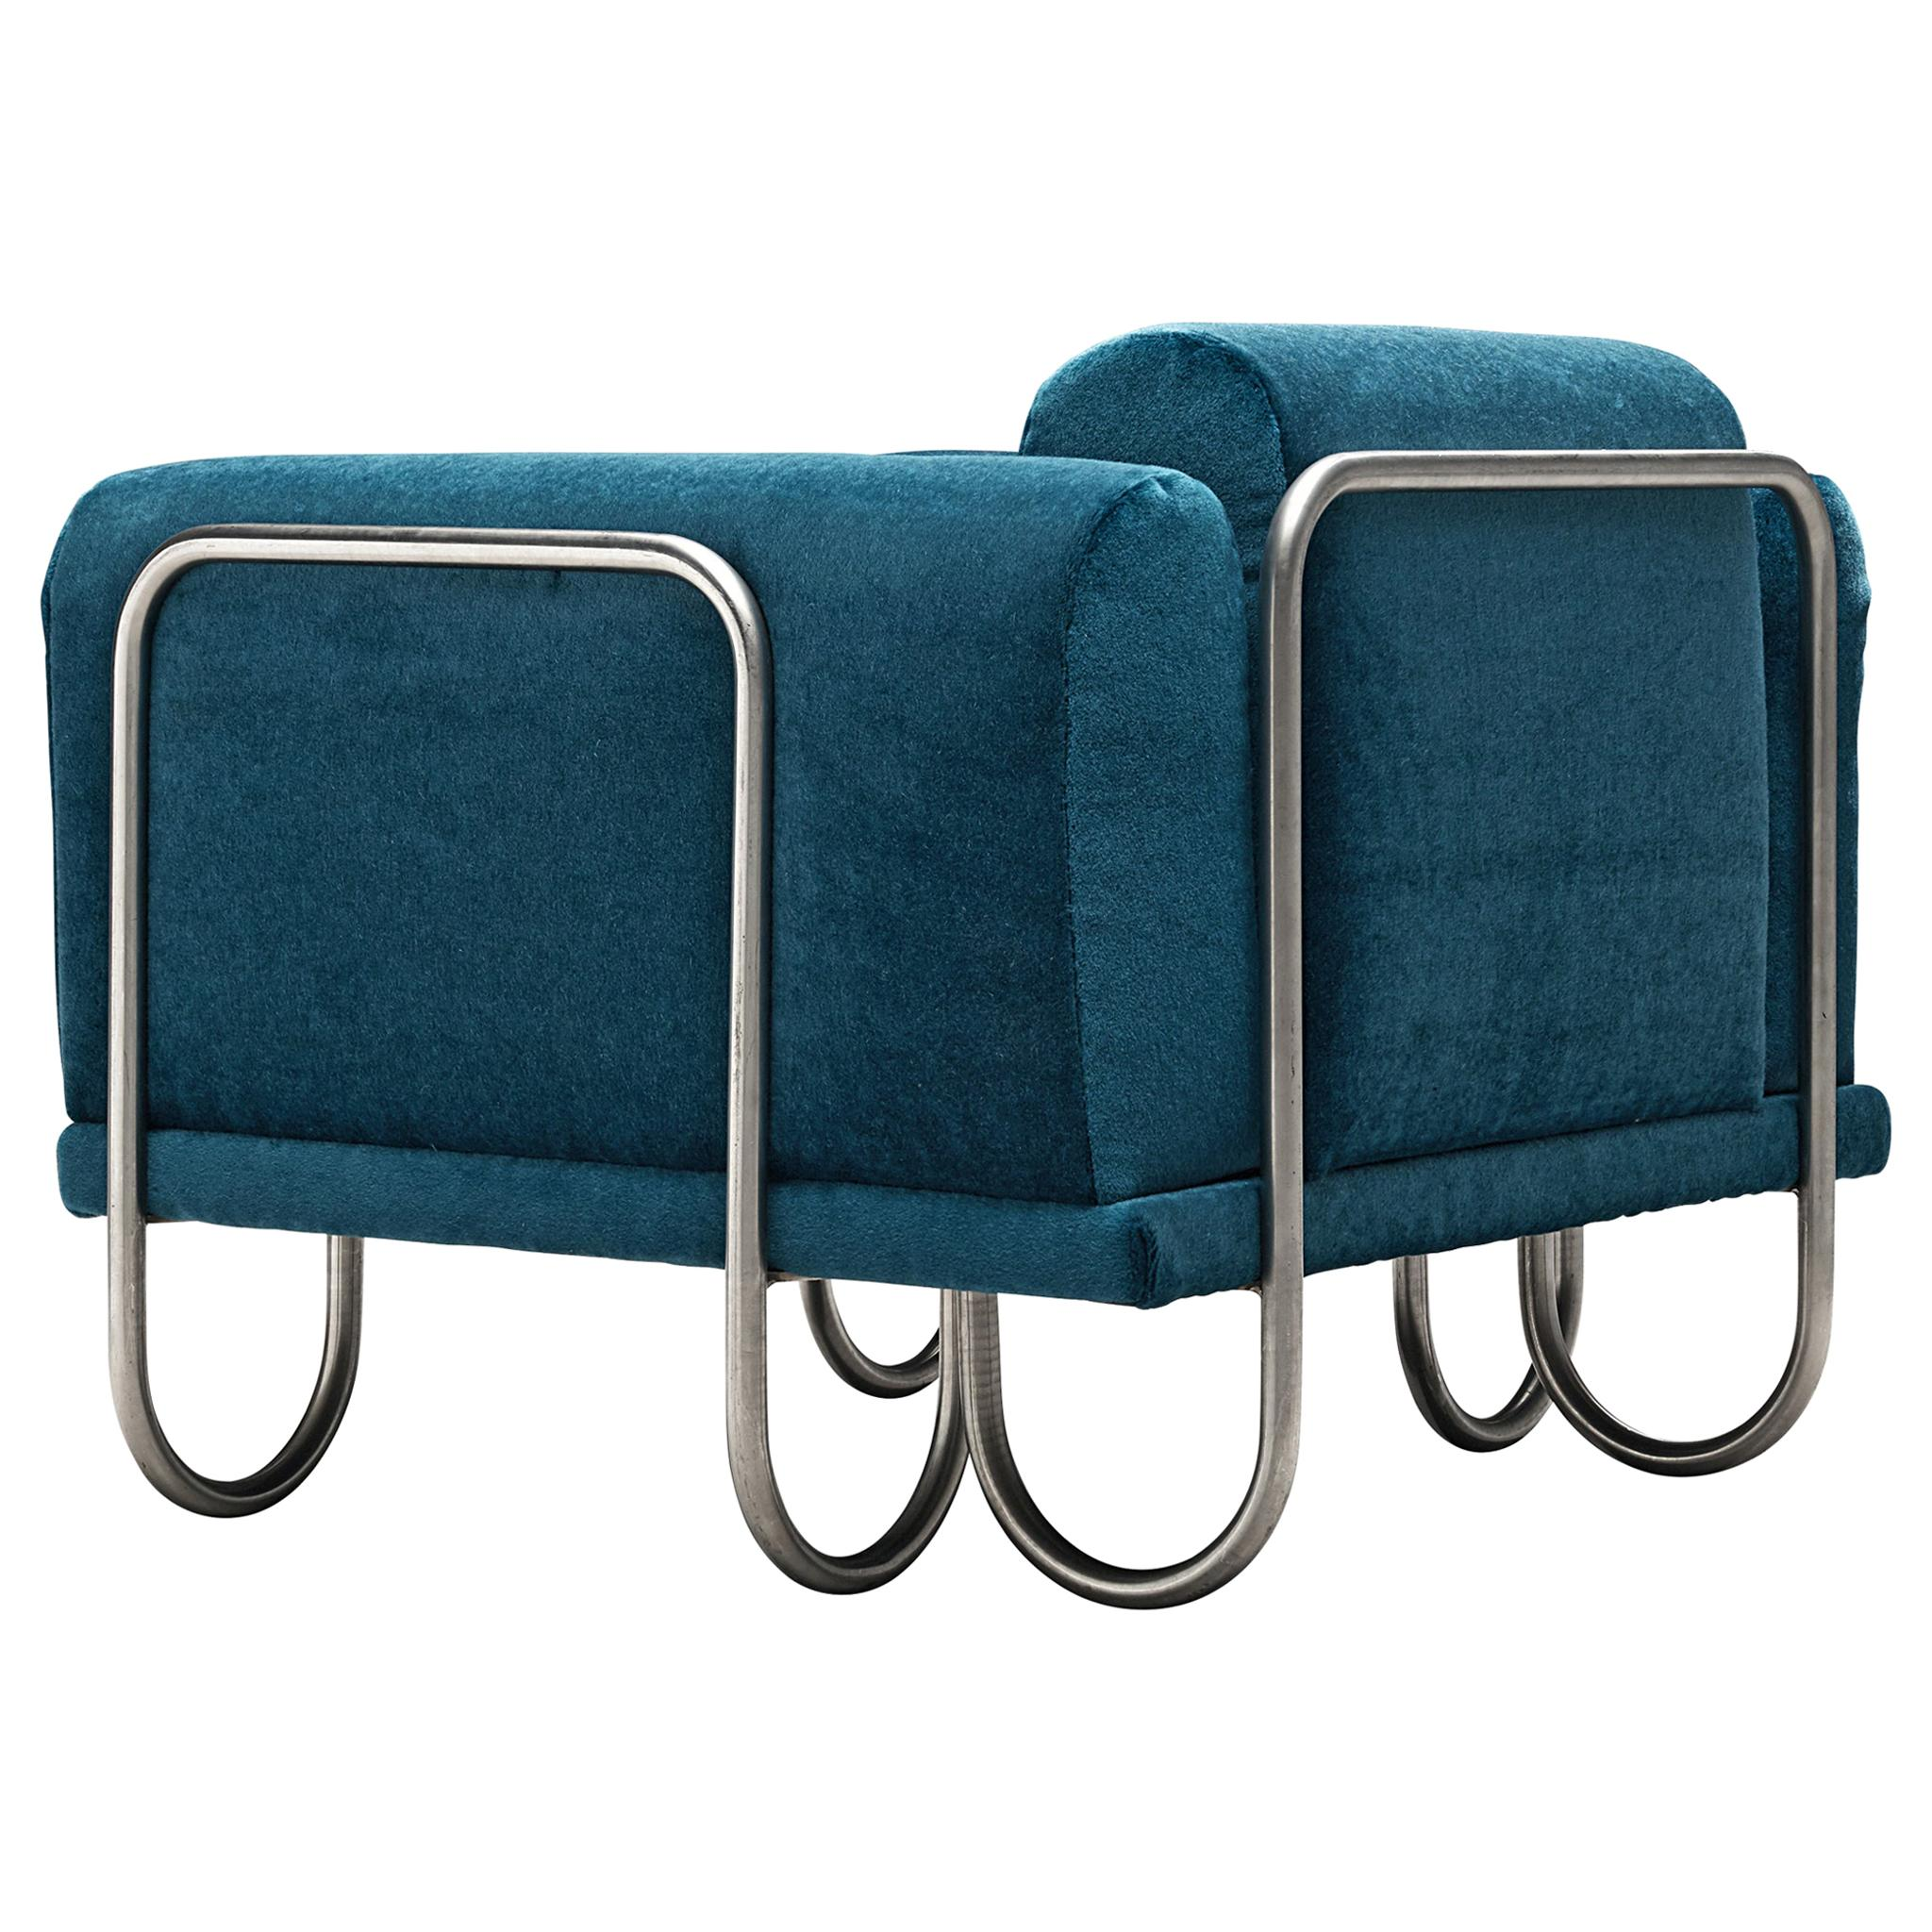 Large Set of French Lounge Chairs with Tubular Frames